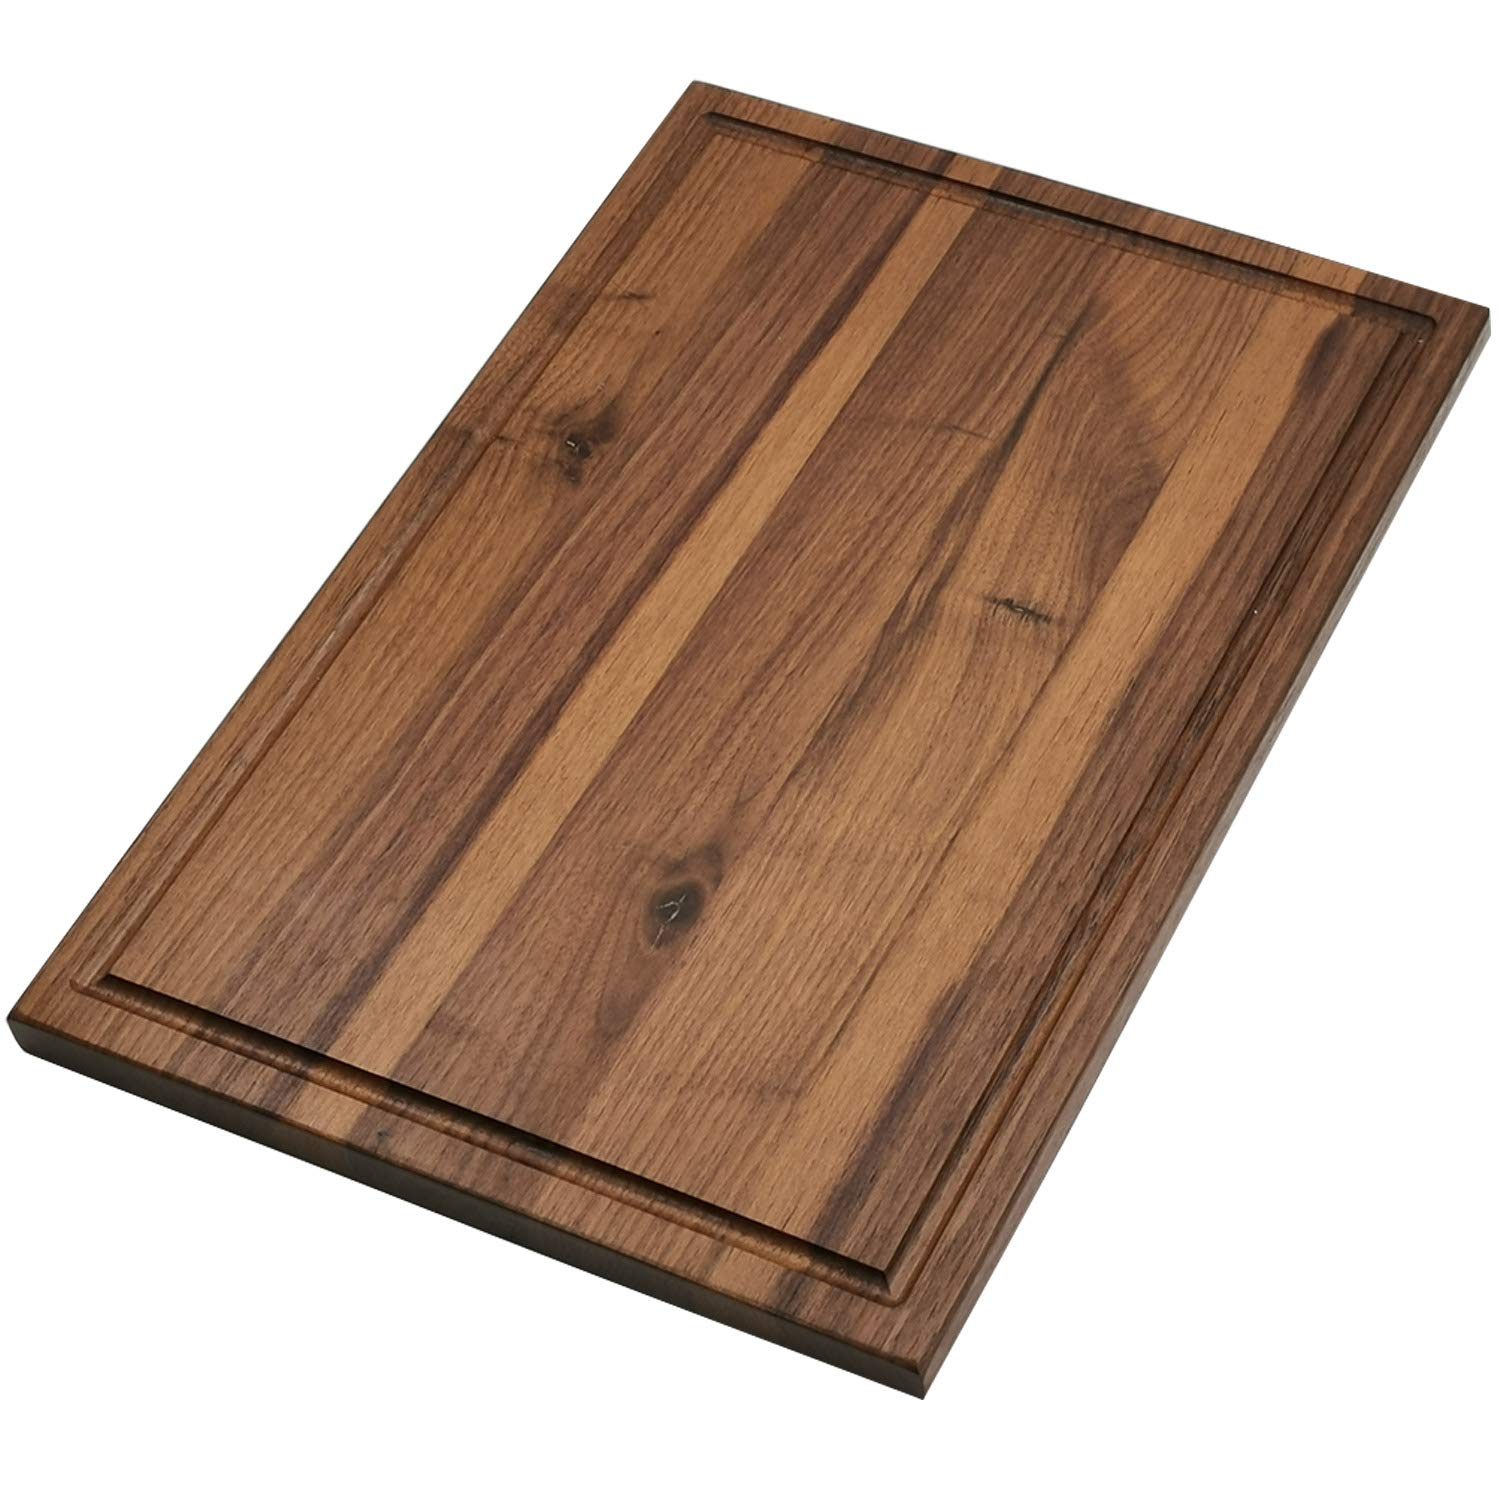 Cutting Board - Cutting Boards for kitchen with Juice Groove American Walnut Hardwood Chopping Board and Carving Countertop Block 16x12 for Meats Bread Fruits